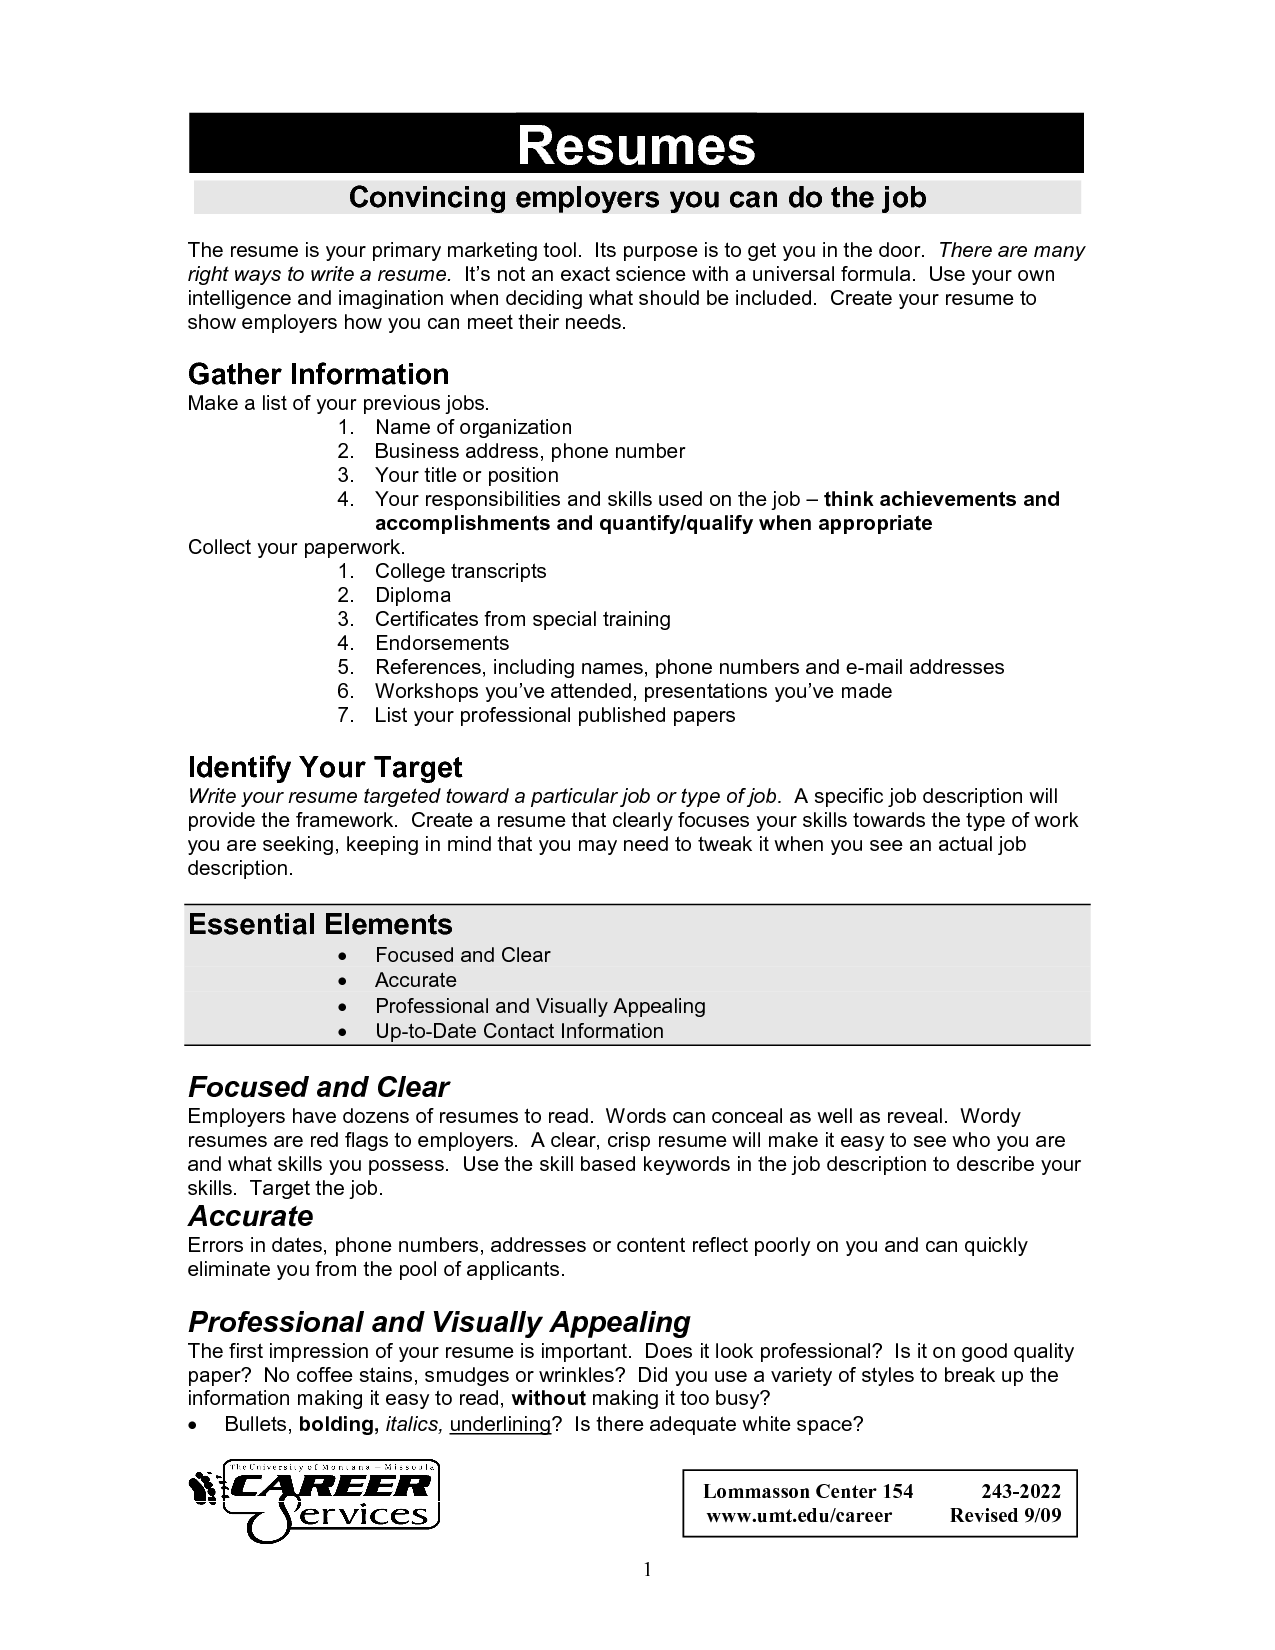 What Good Free Resume Builder Templates And Best Writing Software  How To Write A Resume Resume